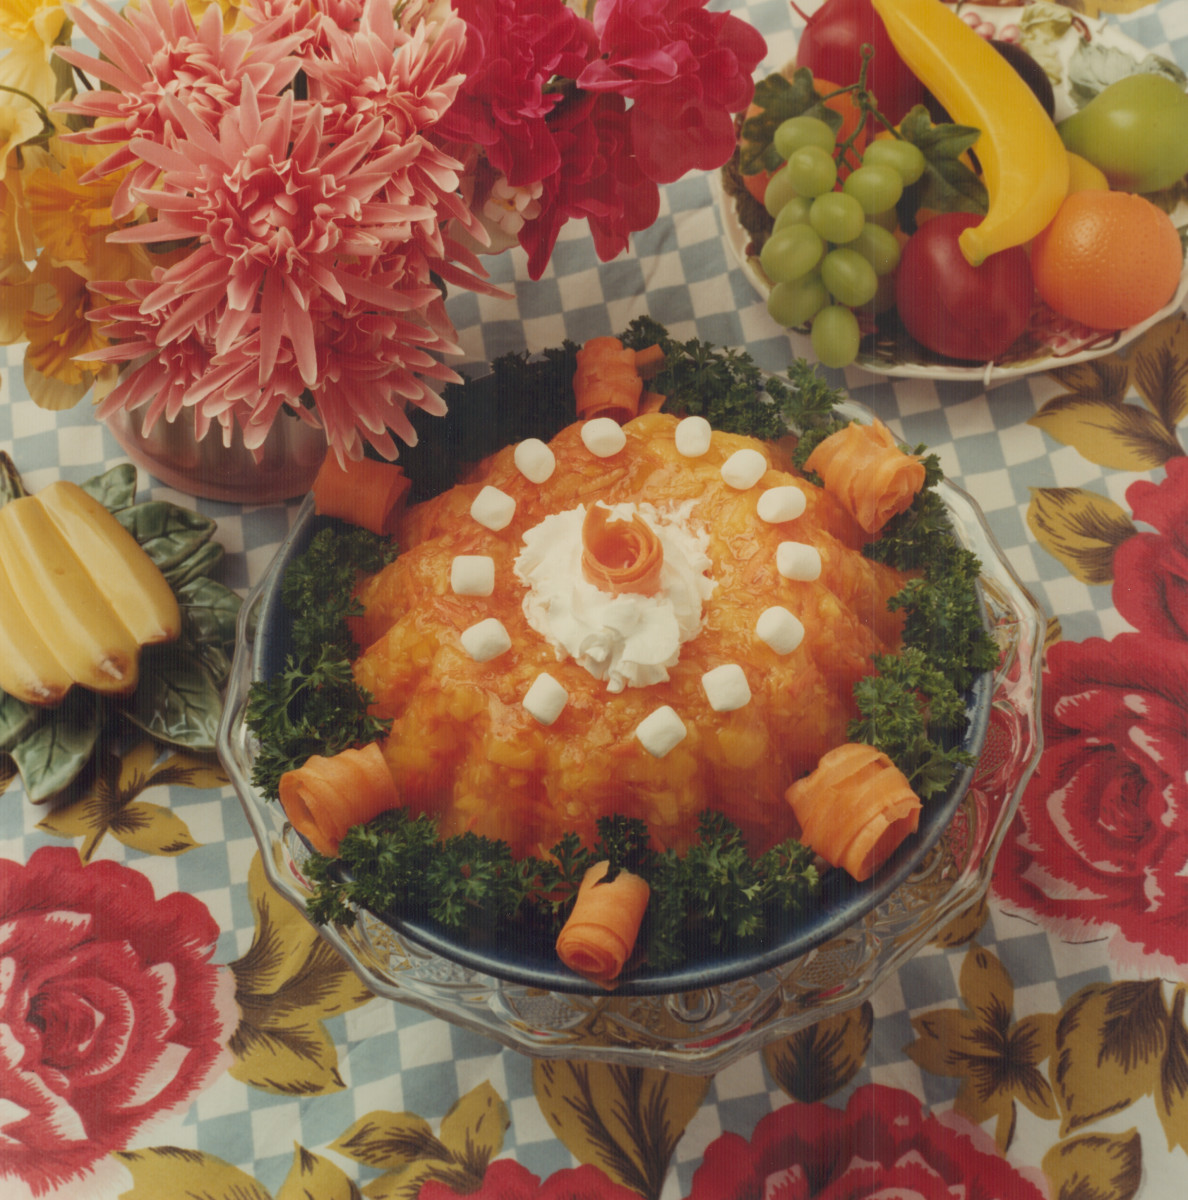 A mold of Sunset Salad from 1962, featuring grated carrots and crushed pineapple floating in orange Jell-O.